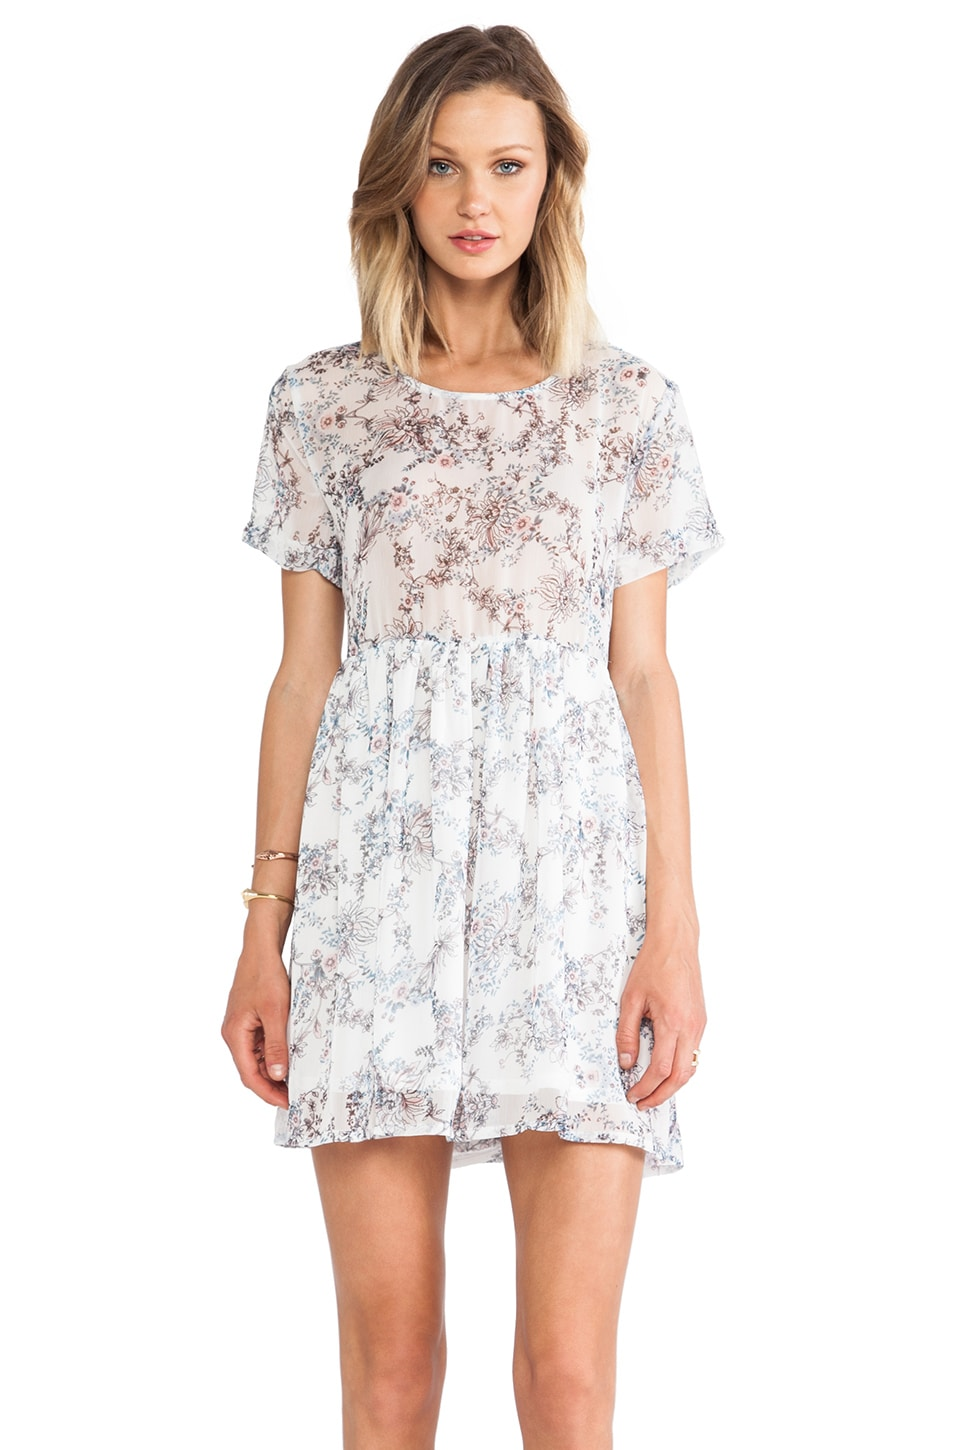 ANINE BING Loose Fit Dress in Floral Print